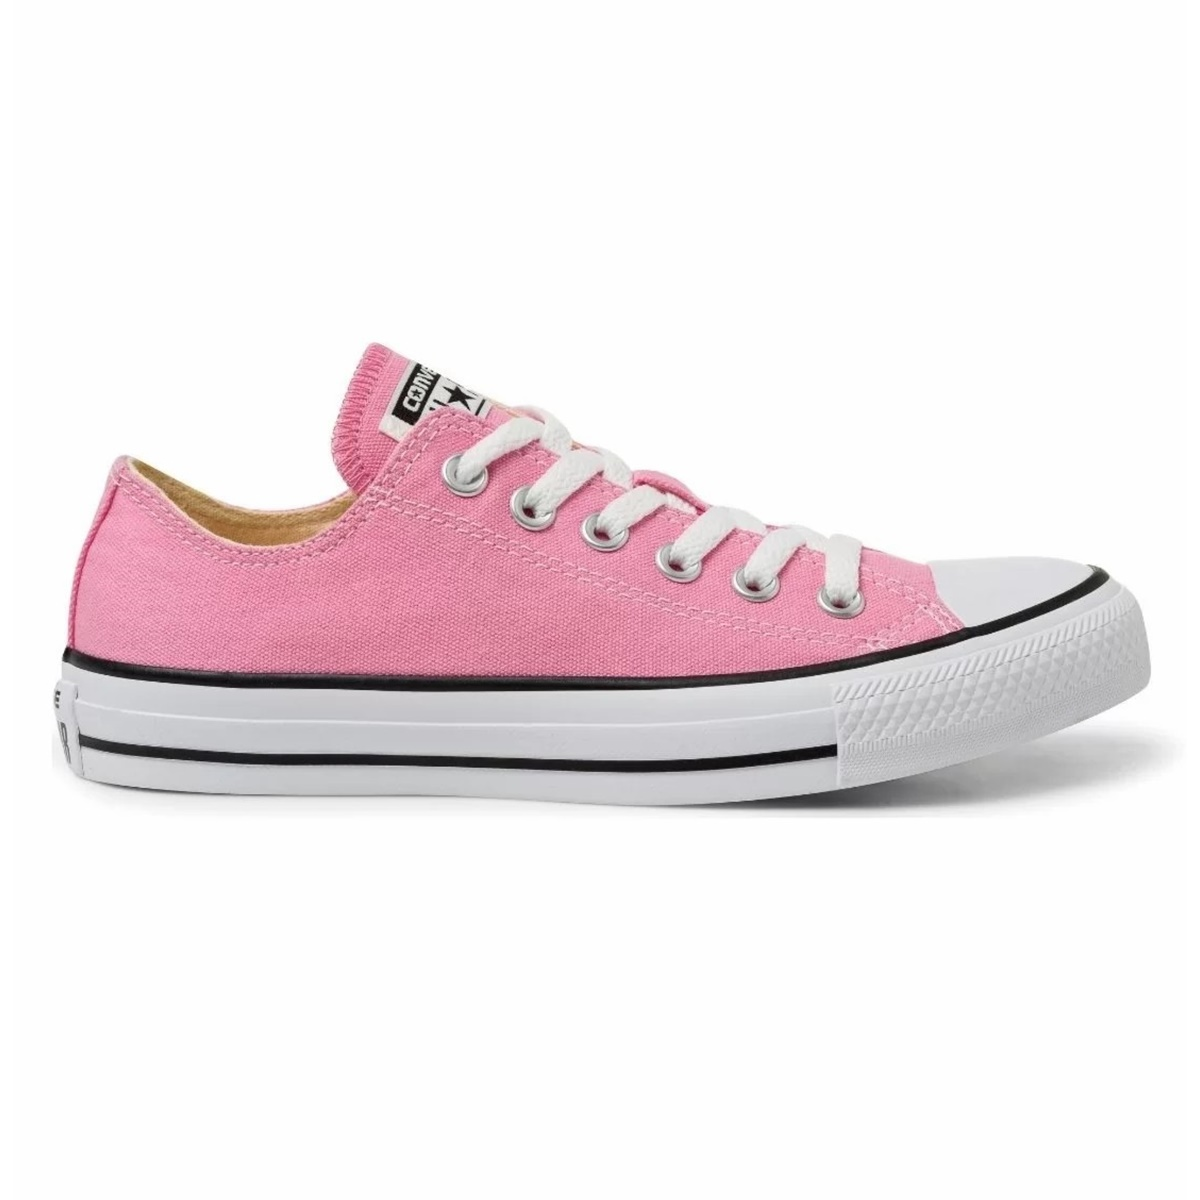 Tênis Unissex All Star Converse Casual Rosa